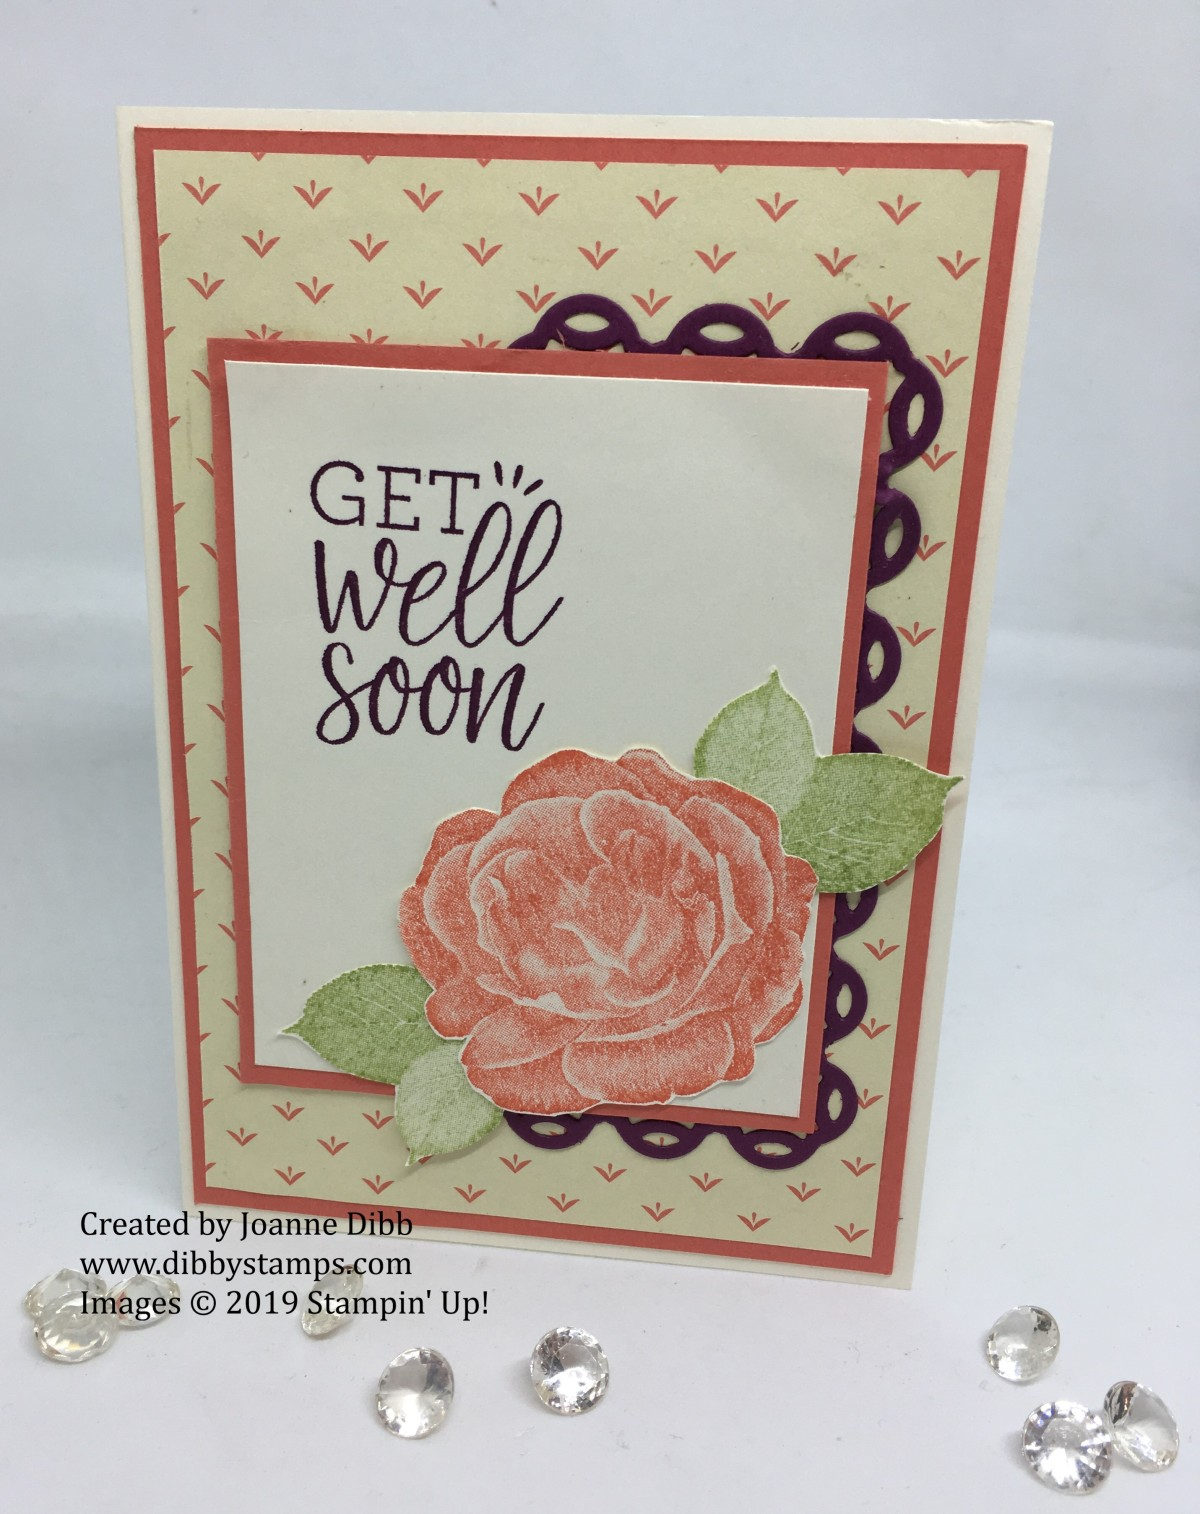 Get Well Soon Card with Healing Hugs